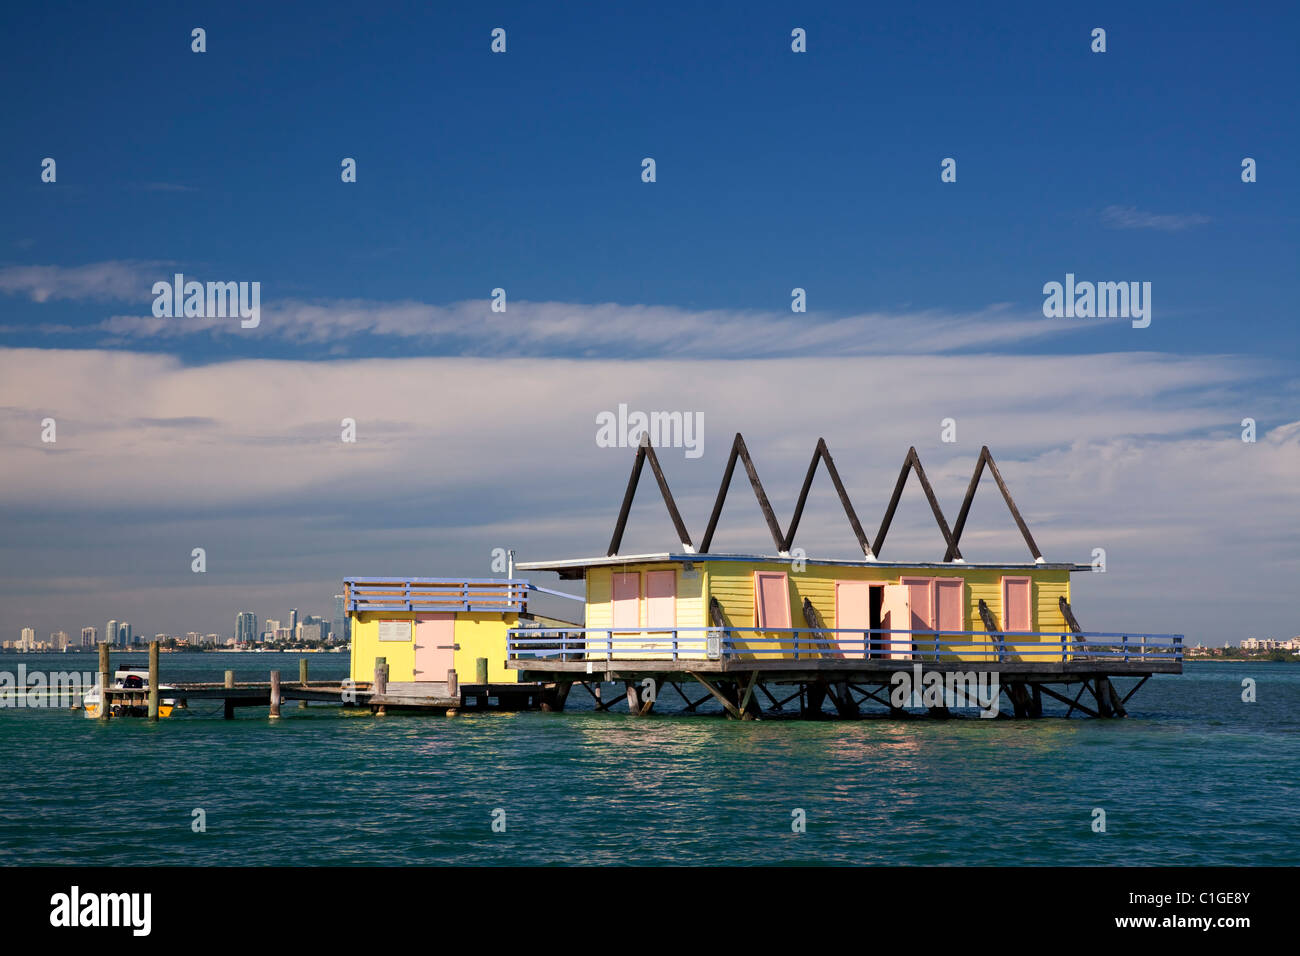 Colorful old Stilt house in Biscayne Bay, Miami skyline in background low clouds below deep blue sky, copy space - Stock Image